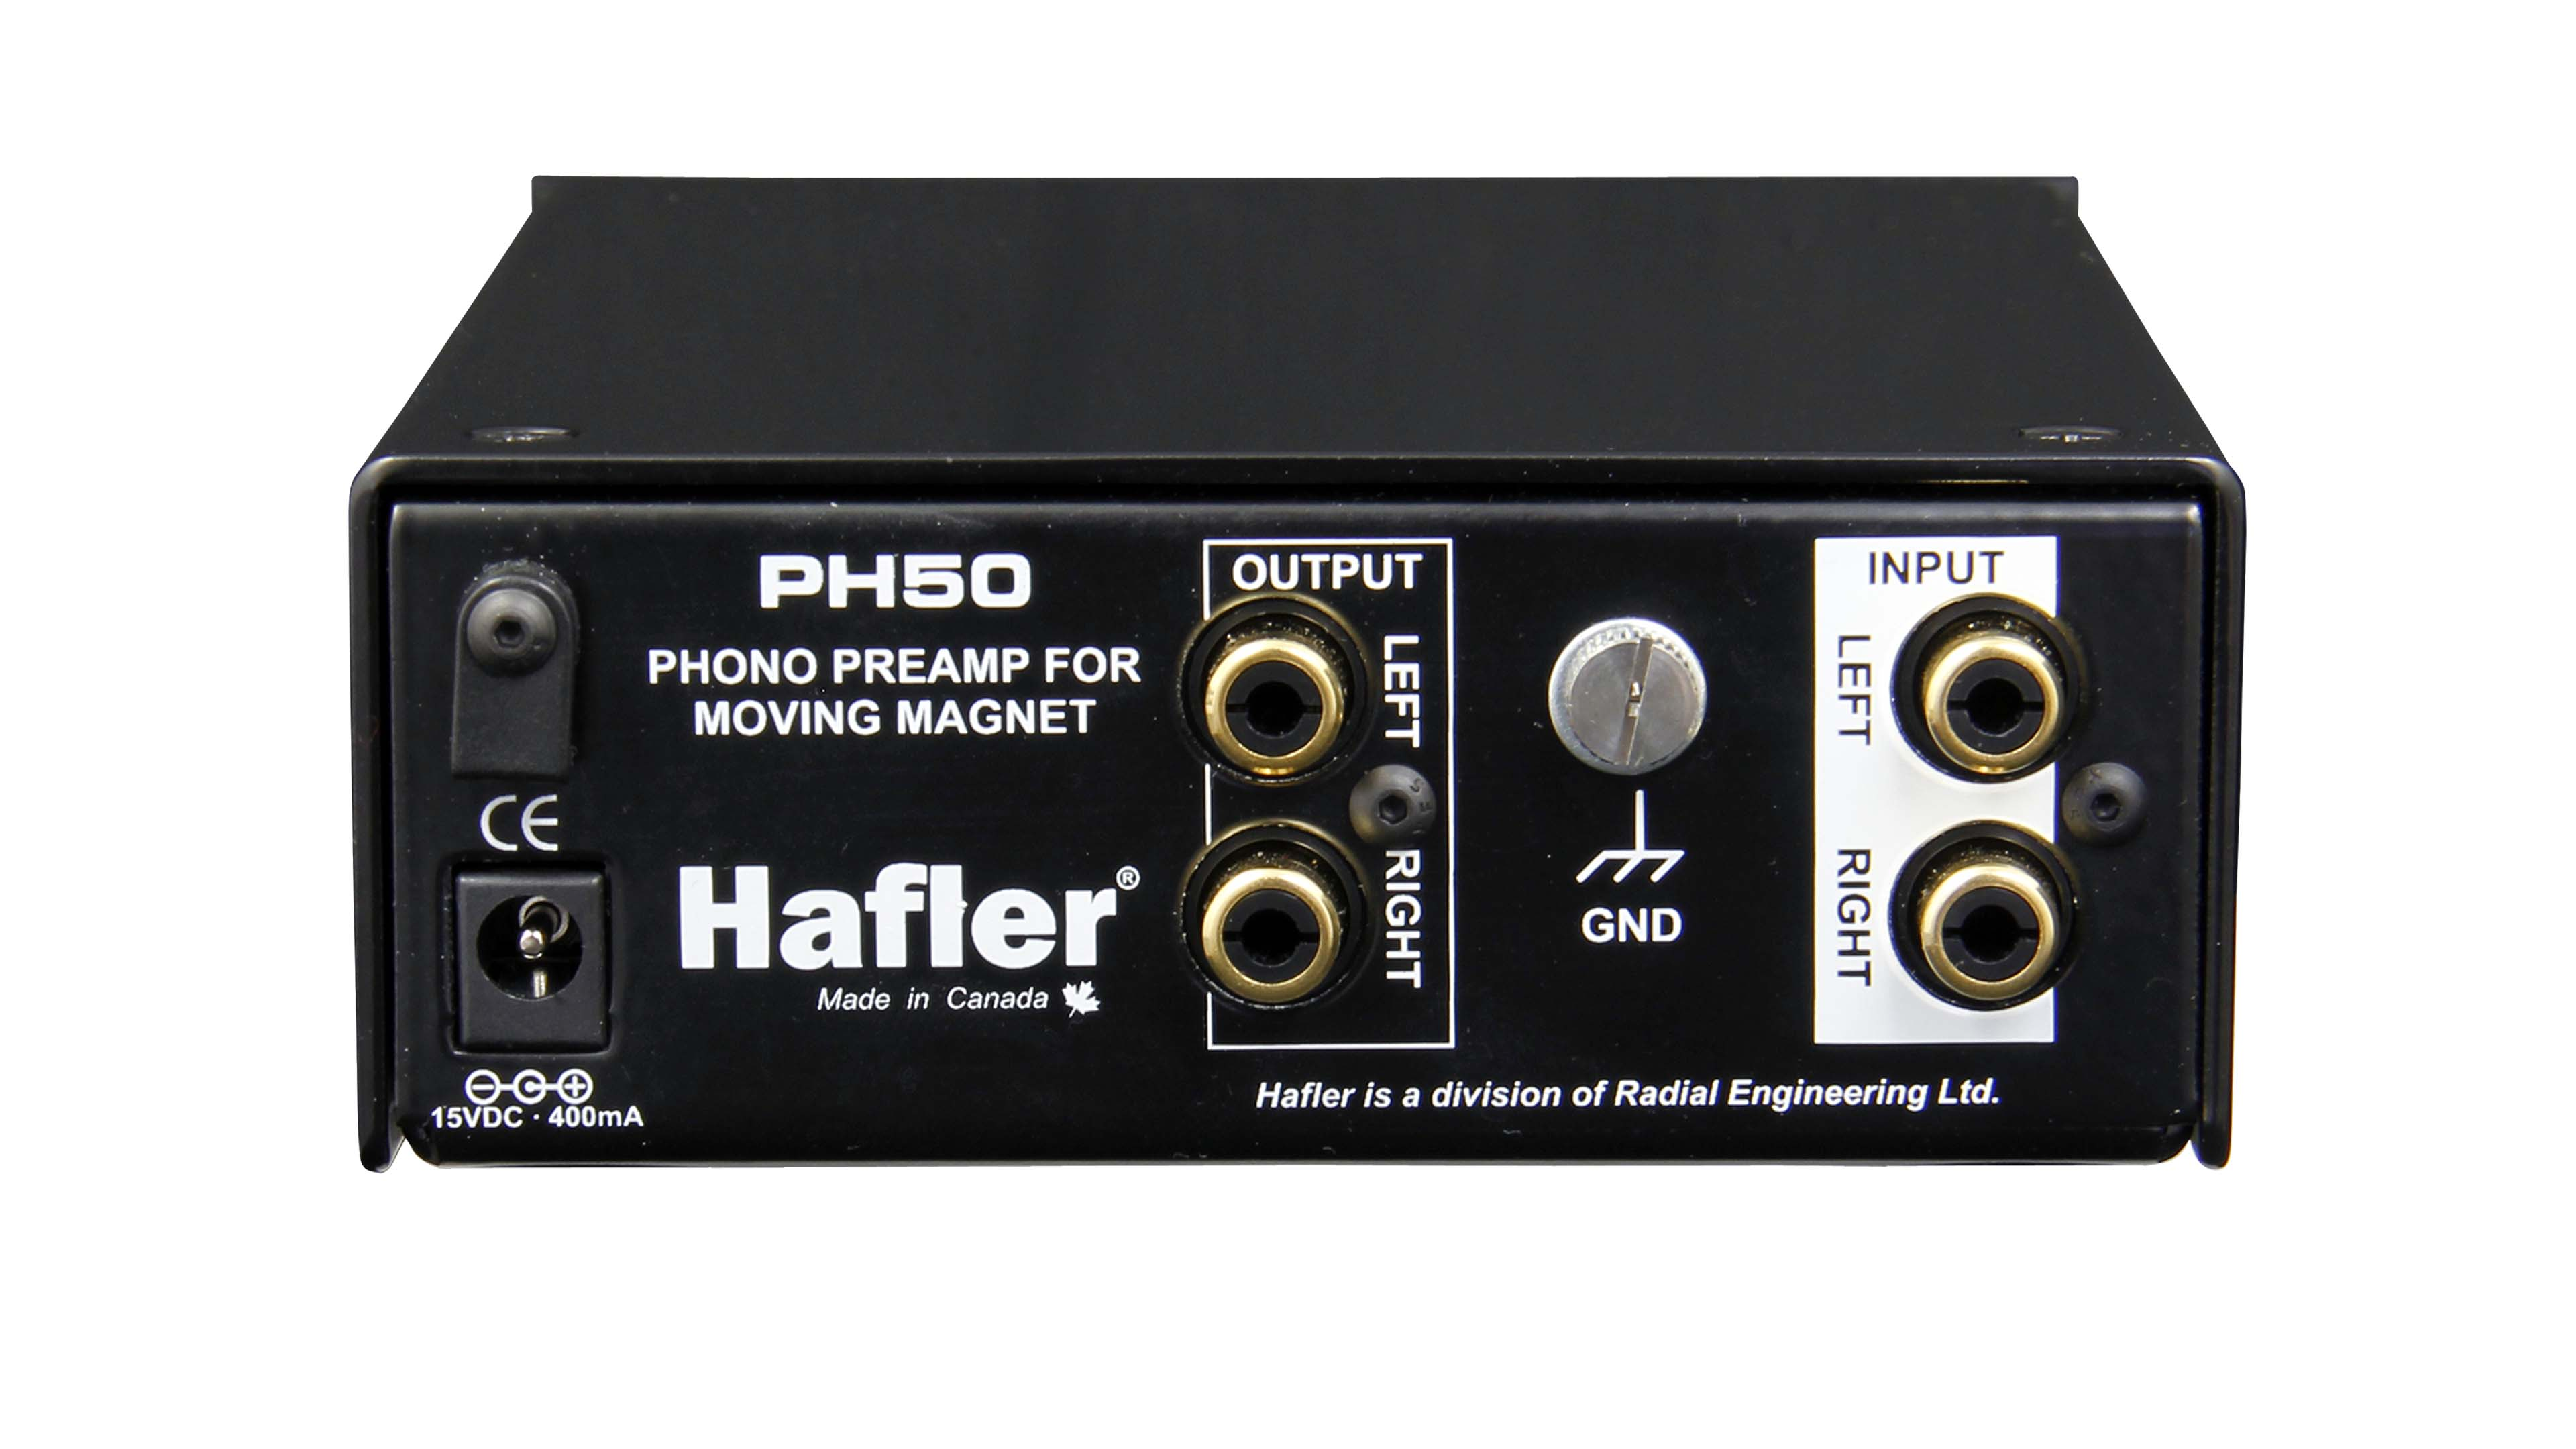 Hafler Audio Creativ Preamplifier Input From Moving Coil Head Ph50